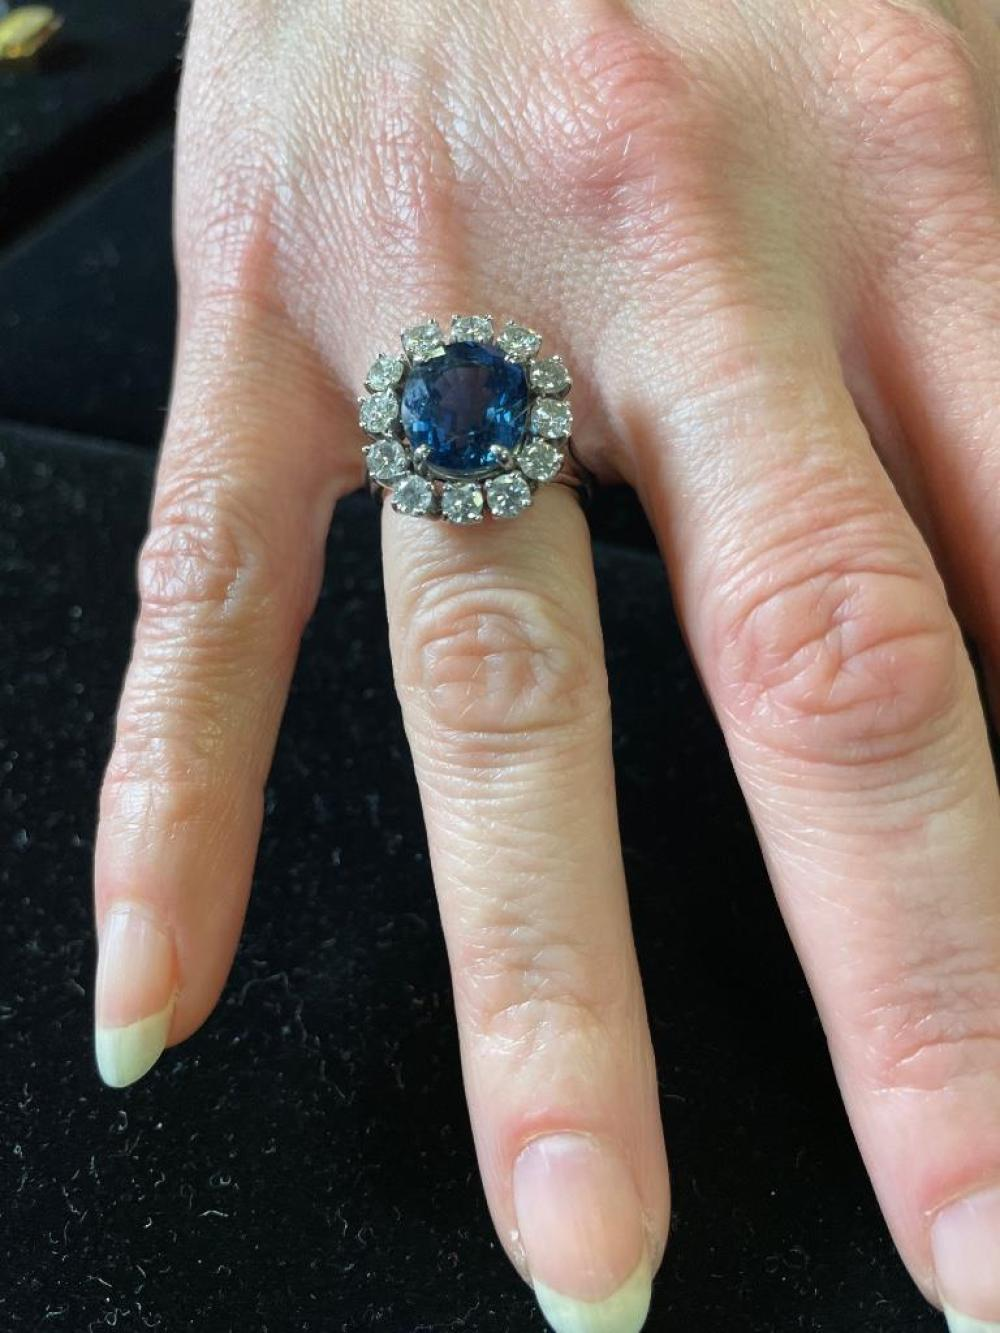 Lady's custom 14K white gold cushion cut sapphire and diamond halo ring RIng size 5 1/2. 4.88 dwt.